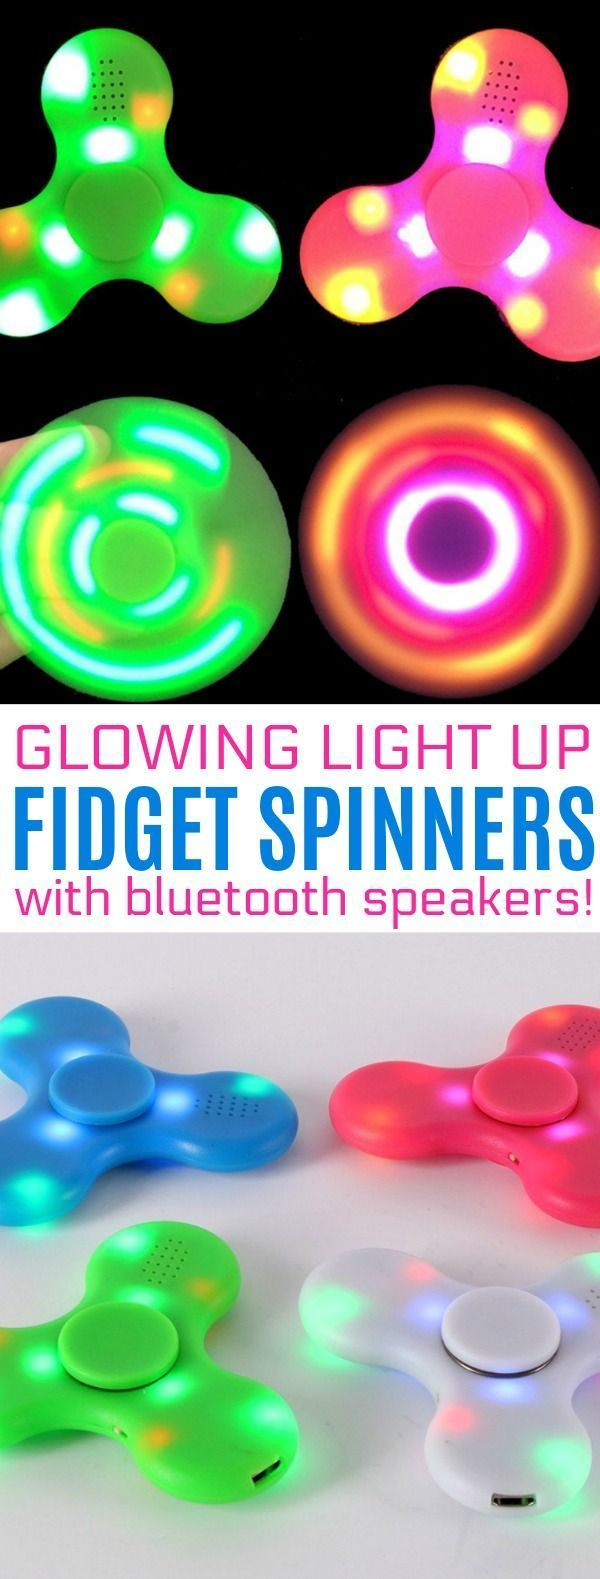 20 Best Premium Spinners Images On Pinterest Cubes Hand Spinner Fidget Mainan Full Gold 9 Gears A Light Up With Speakers My Kids Would Die To Have These